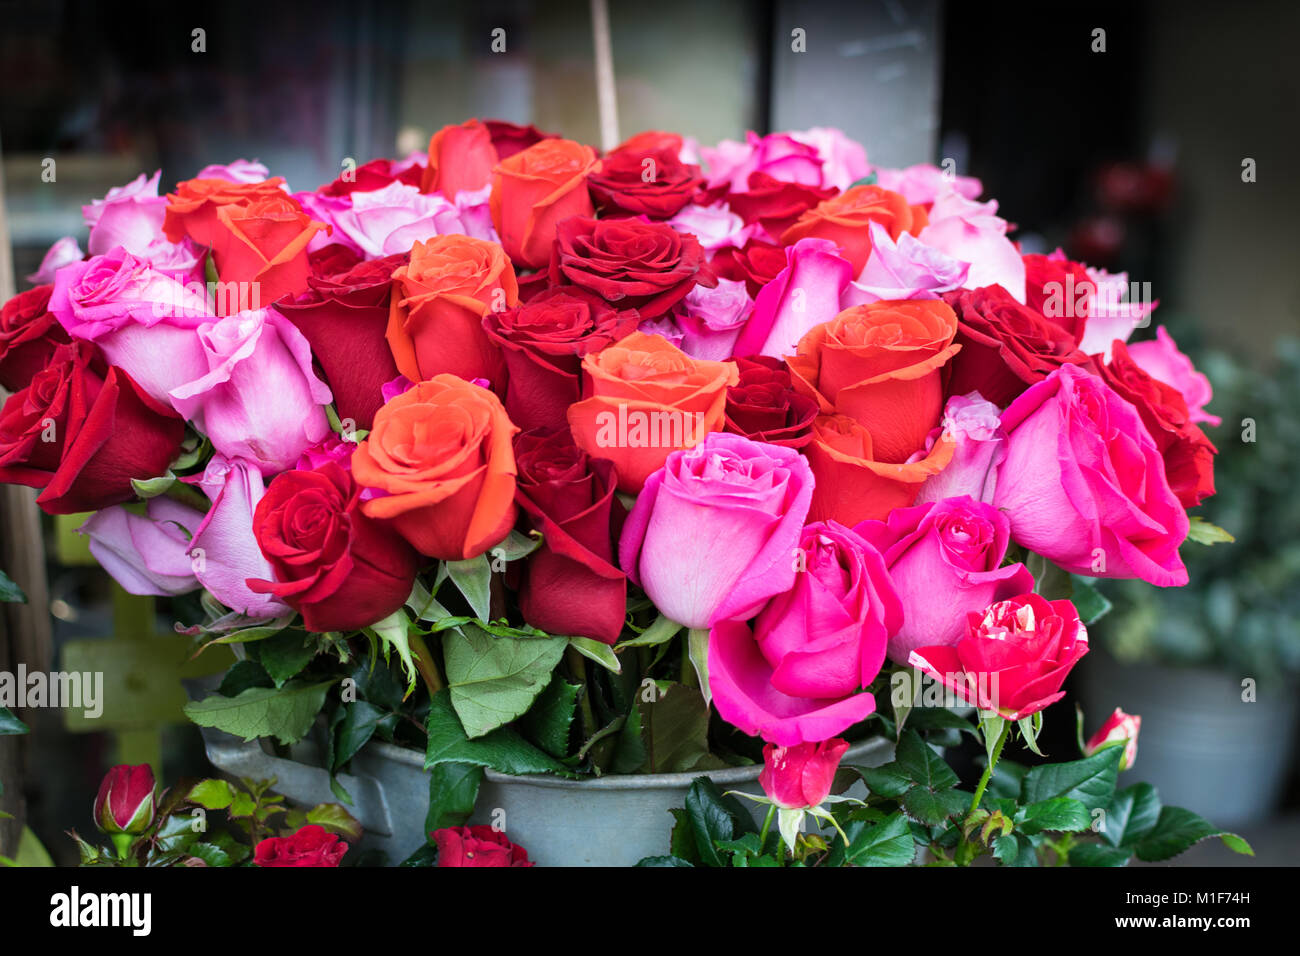 Beautiful flowers ready for valentines, bouquets of brightly colored ...